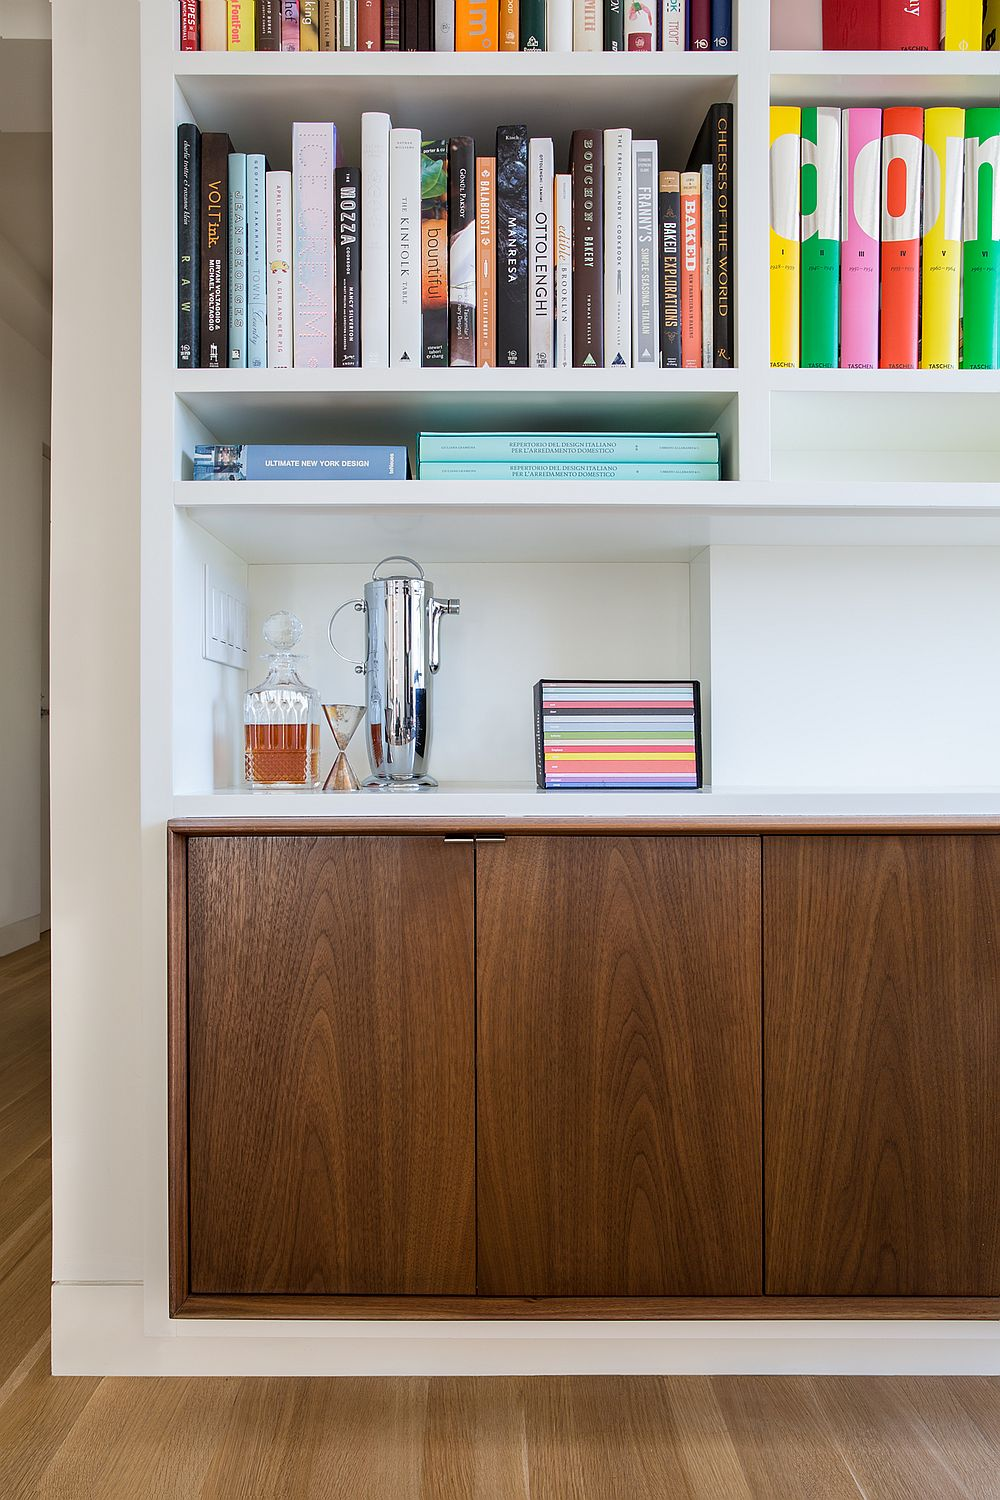 Creating-storage-space-inside-the-modern-apartment-with-lovely-wooden-cabinets-underneath-open-bookshelves-58364